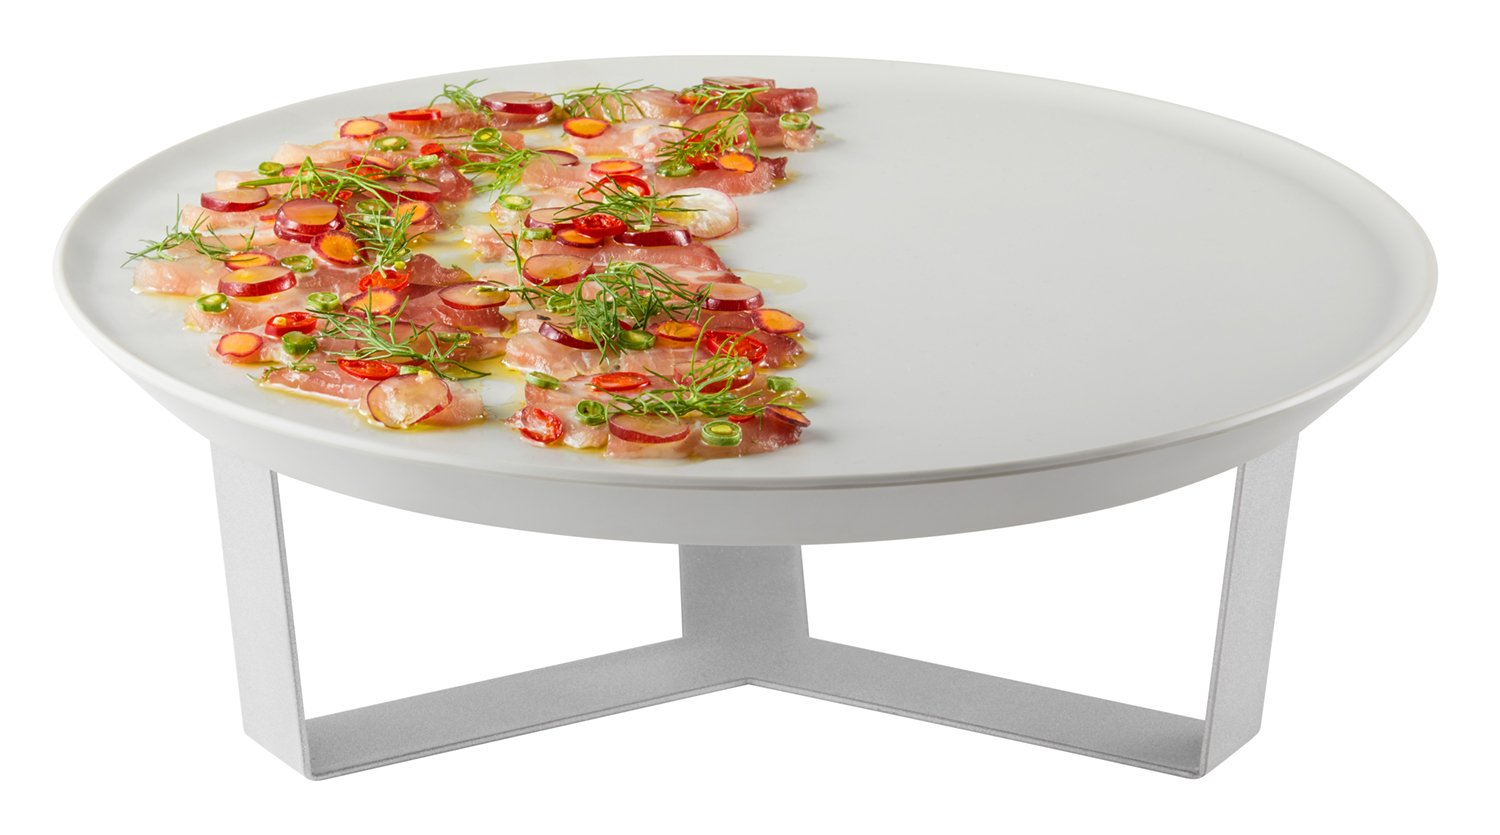 Rosseto SM277 Forme Melamine Tray and 4' Riser Set, Round, Ivory (Pack of 2) Rosseto - BISS